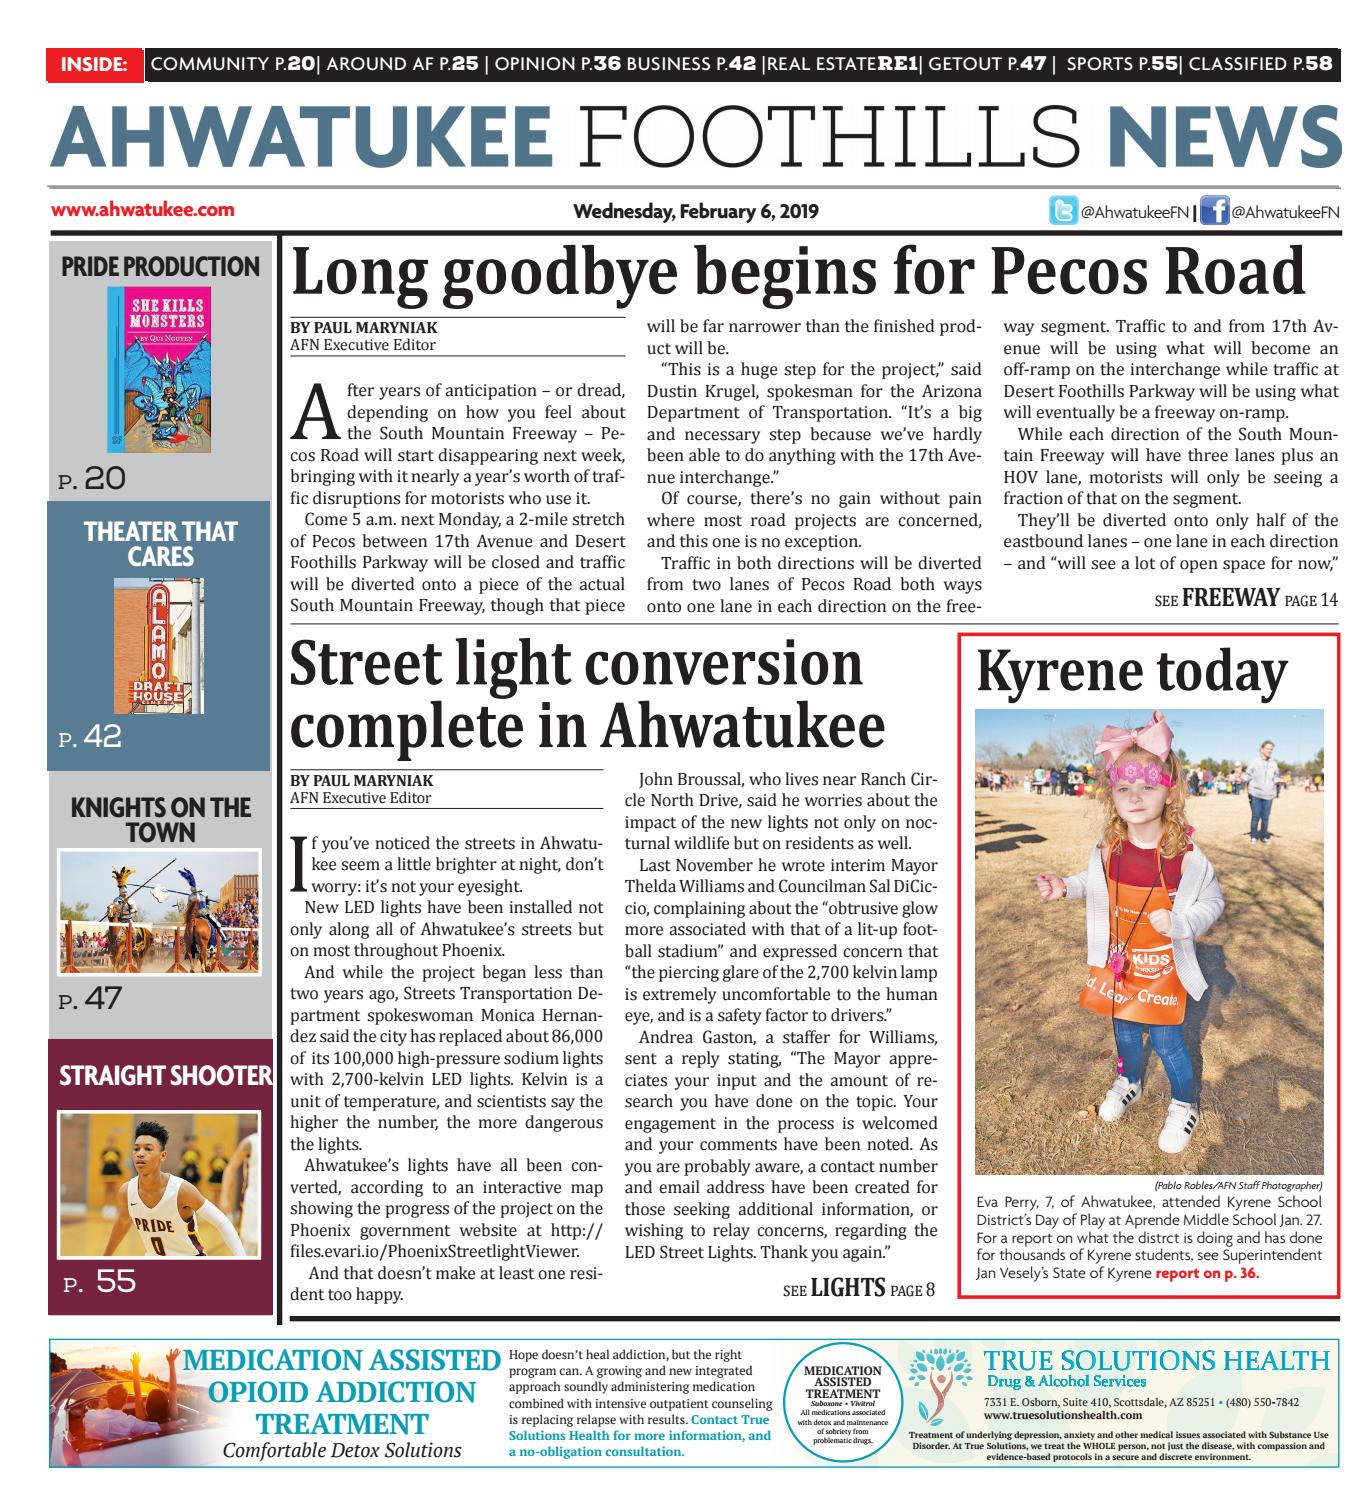 9a707b33b43d Ahwatukee Foothills News - February 6